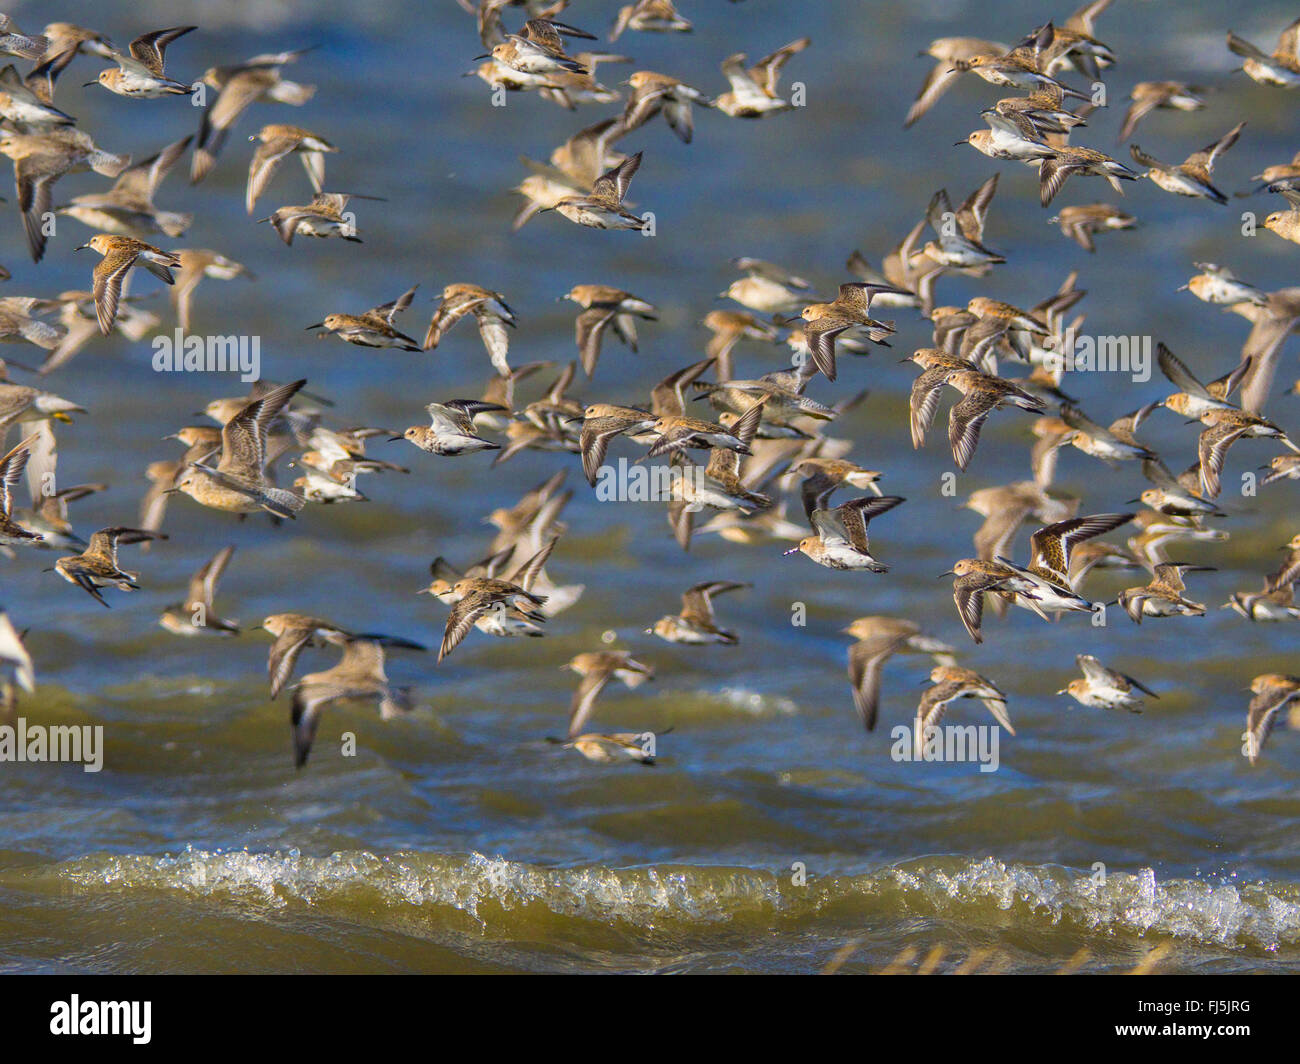 dunlin (Calidris alpina), Flock of birds with dunlins, red knots and grey plover, Germany, Schleswig-Holstein, Schleswig - Stock Image